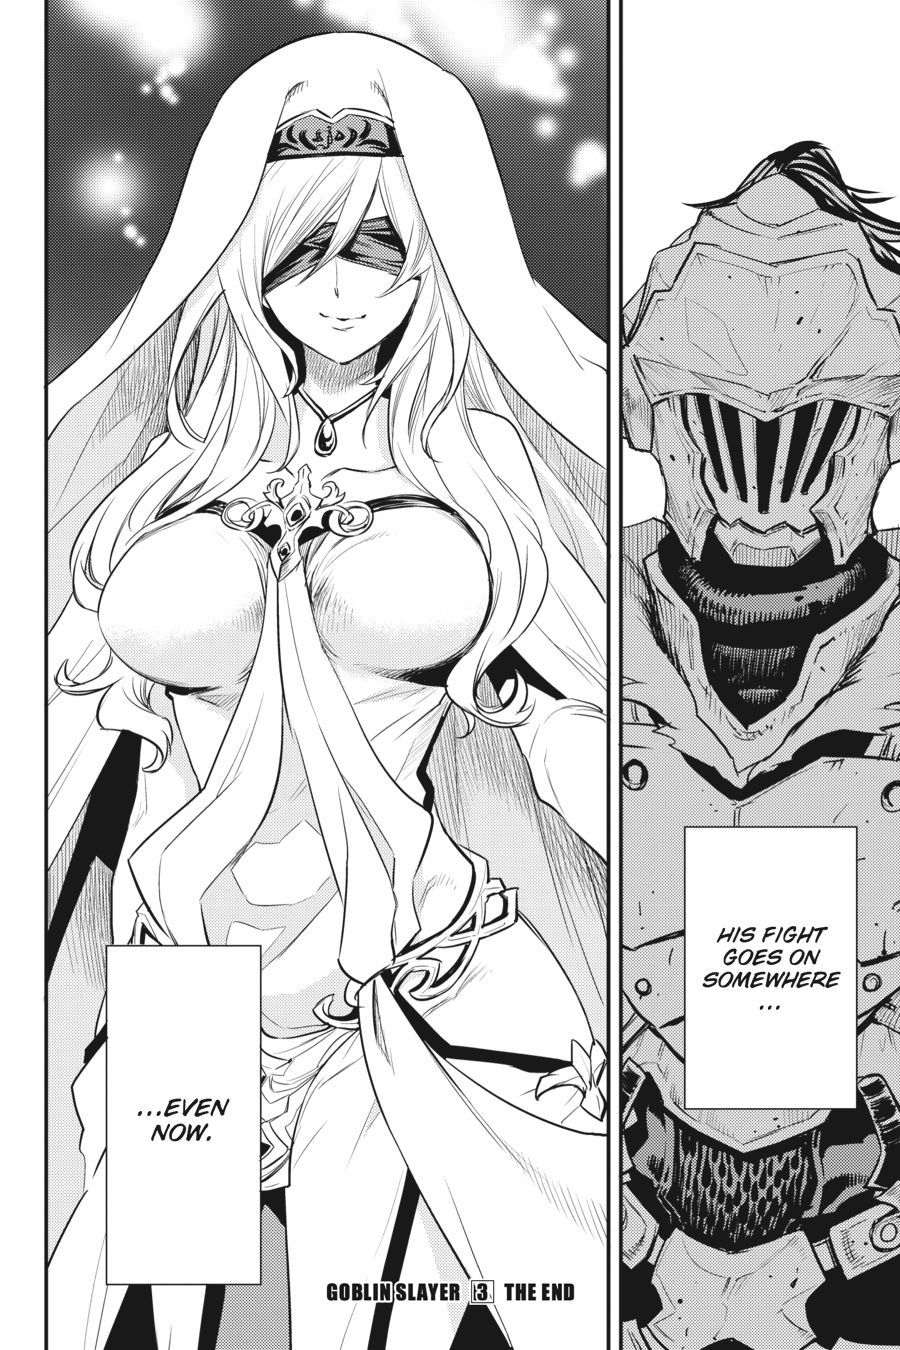 Manga: Goblin Slayer Side Story: Year One